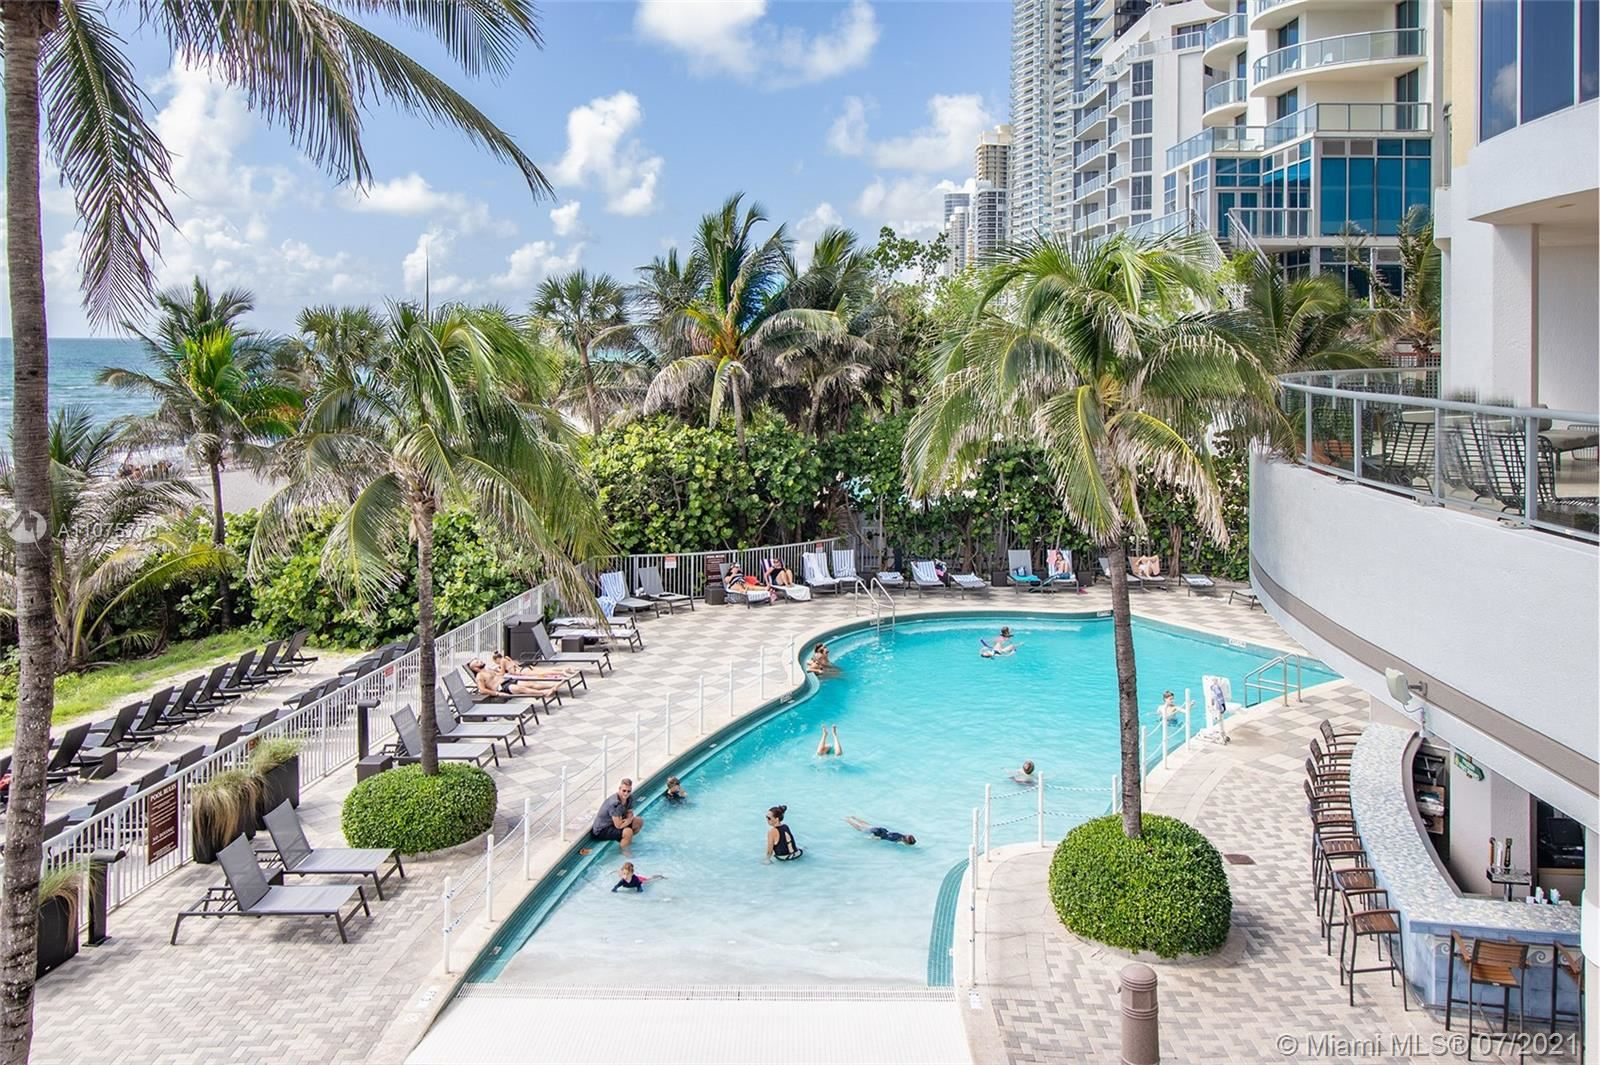 Photo of 17375 Collins Ave #701, Sunny Isles Beach, FL 33160 (MLS # A11075778)